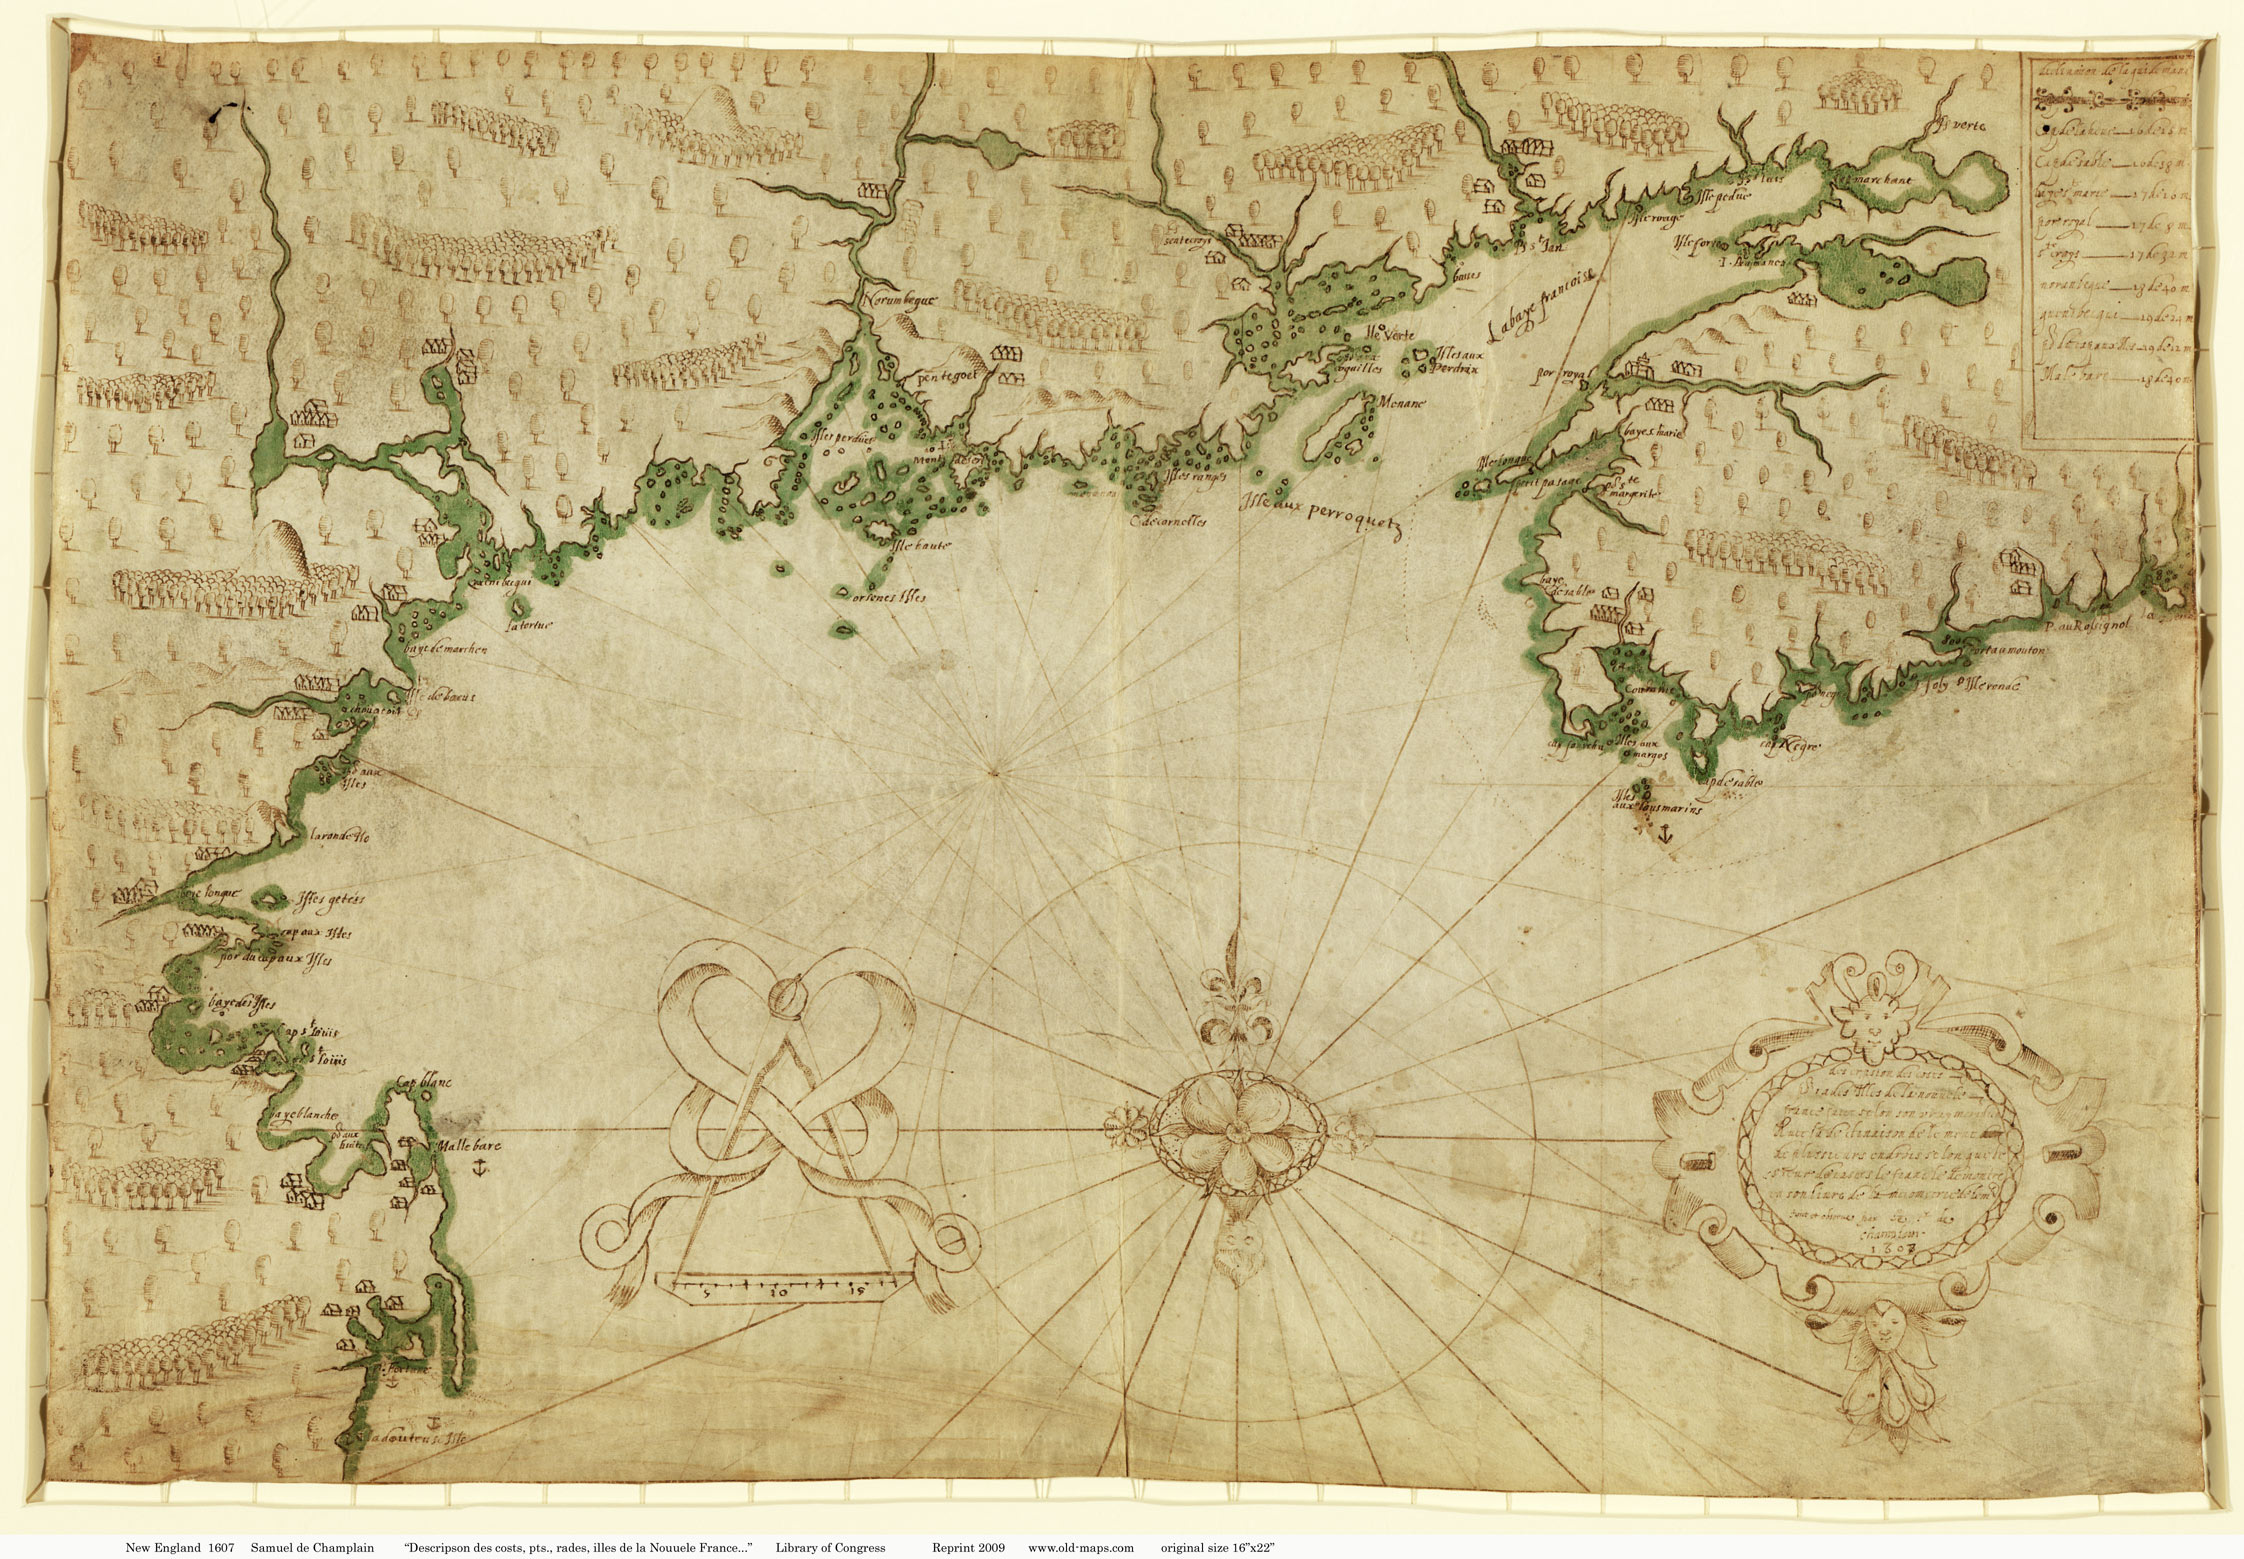 Old New England Map.1607 Samuel De Champlain New England Map